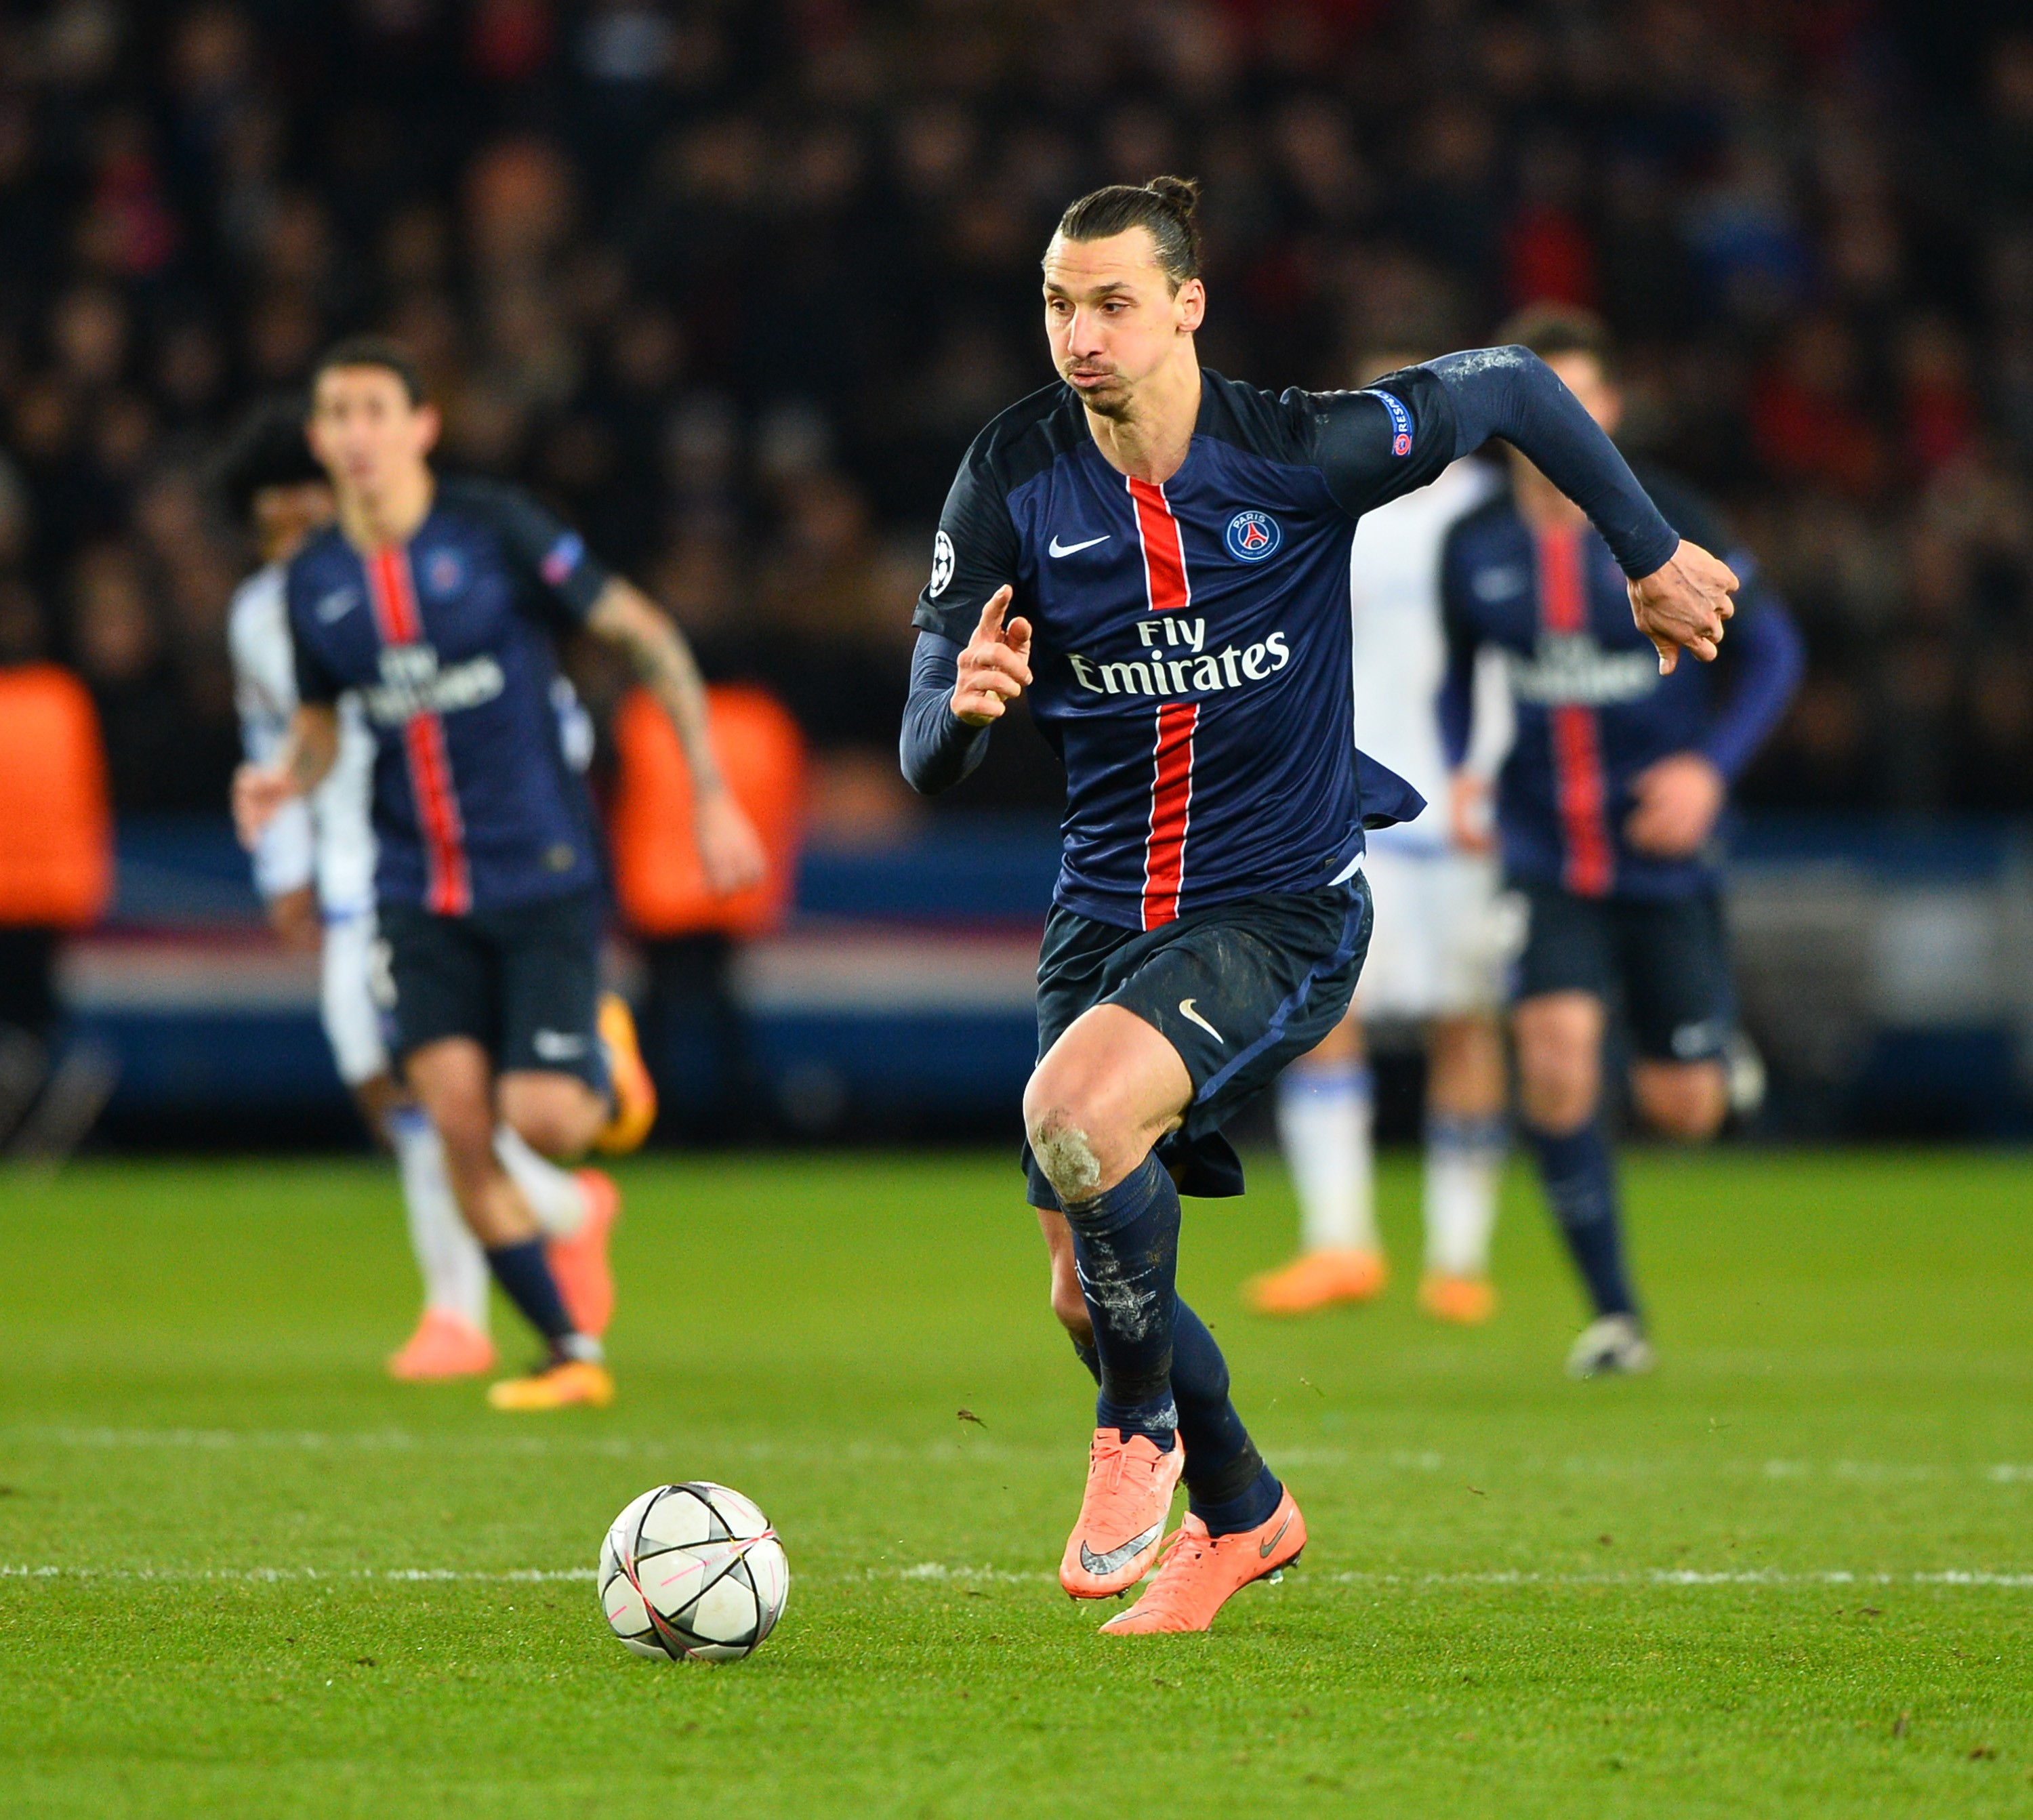 Zlatan Ibrahimovic could snub Arsenal, Chelsea and Manchester United transfer offers to retire